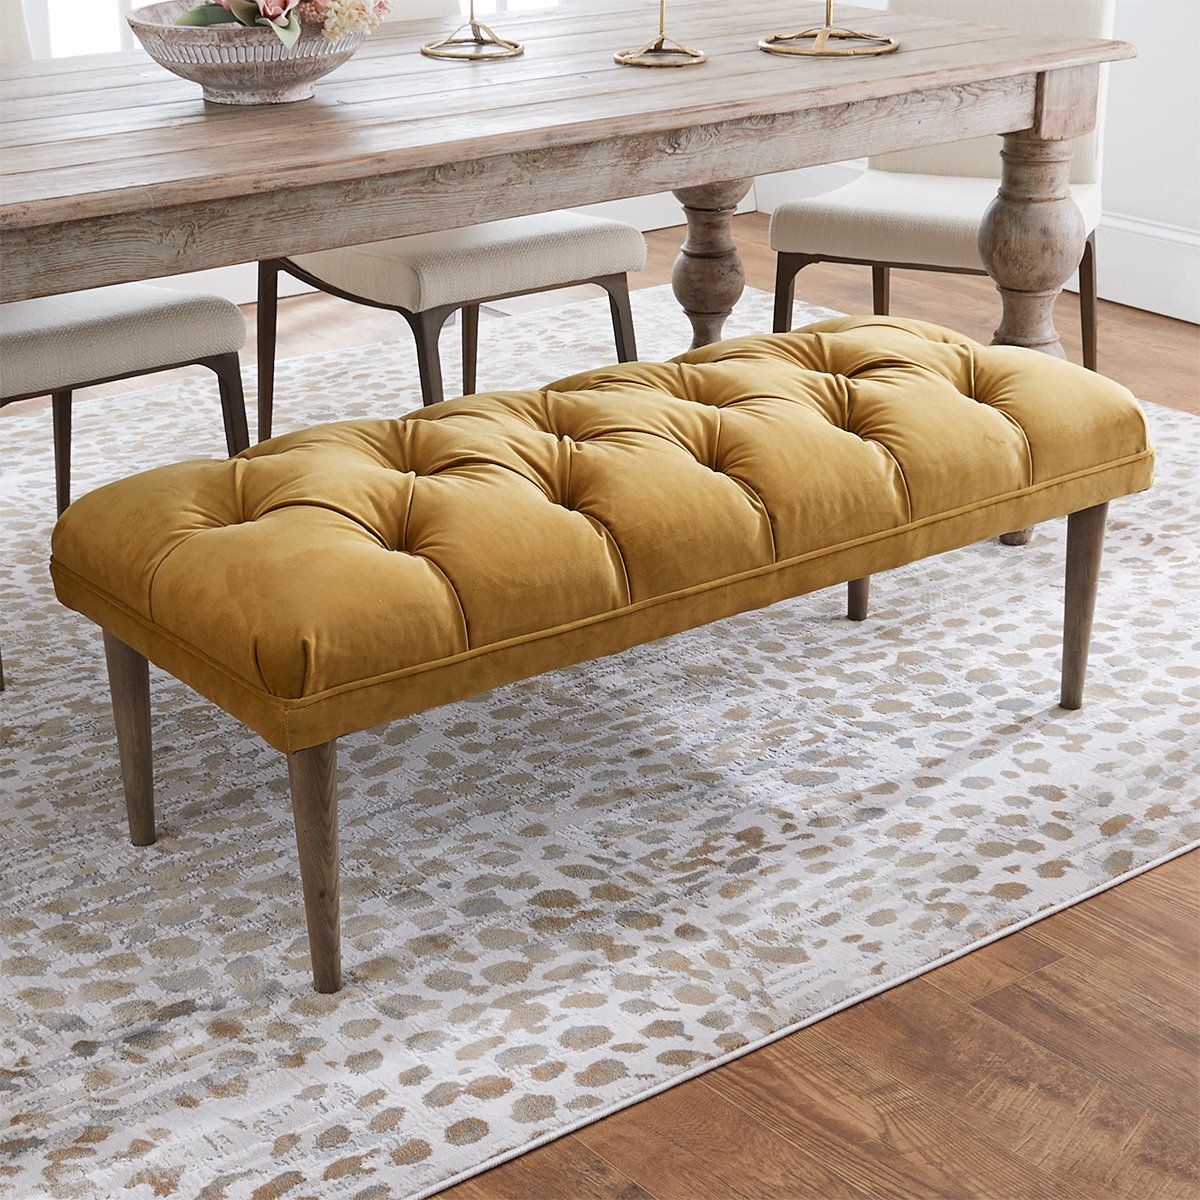 30++ Leather bench seat for dining table Various Types